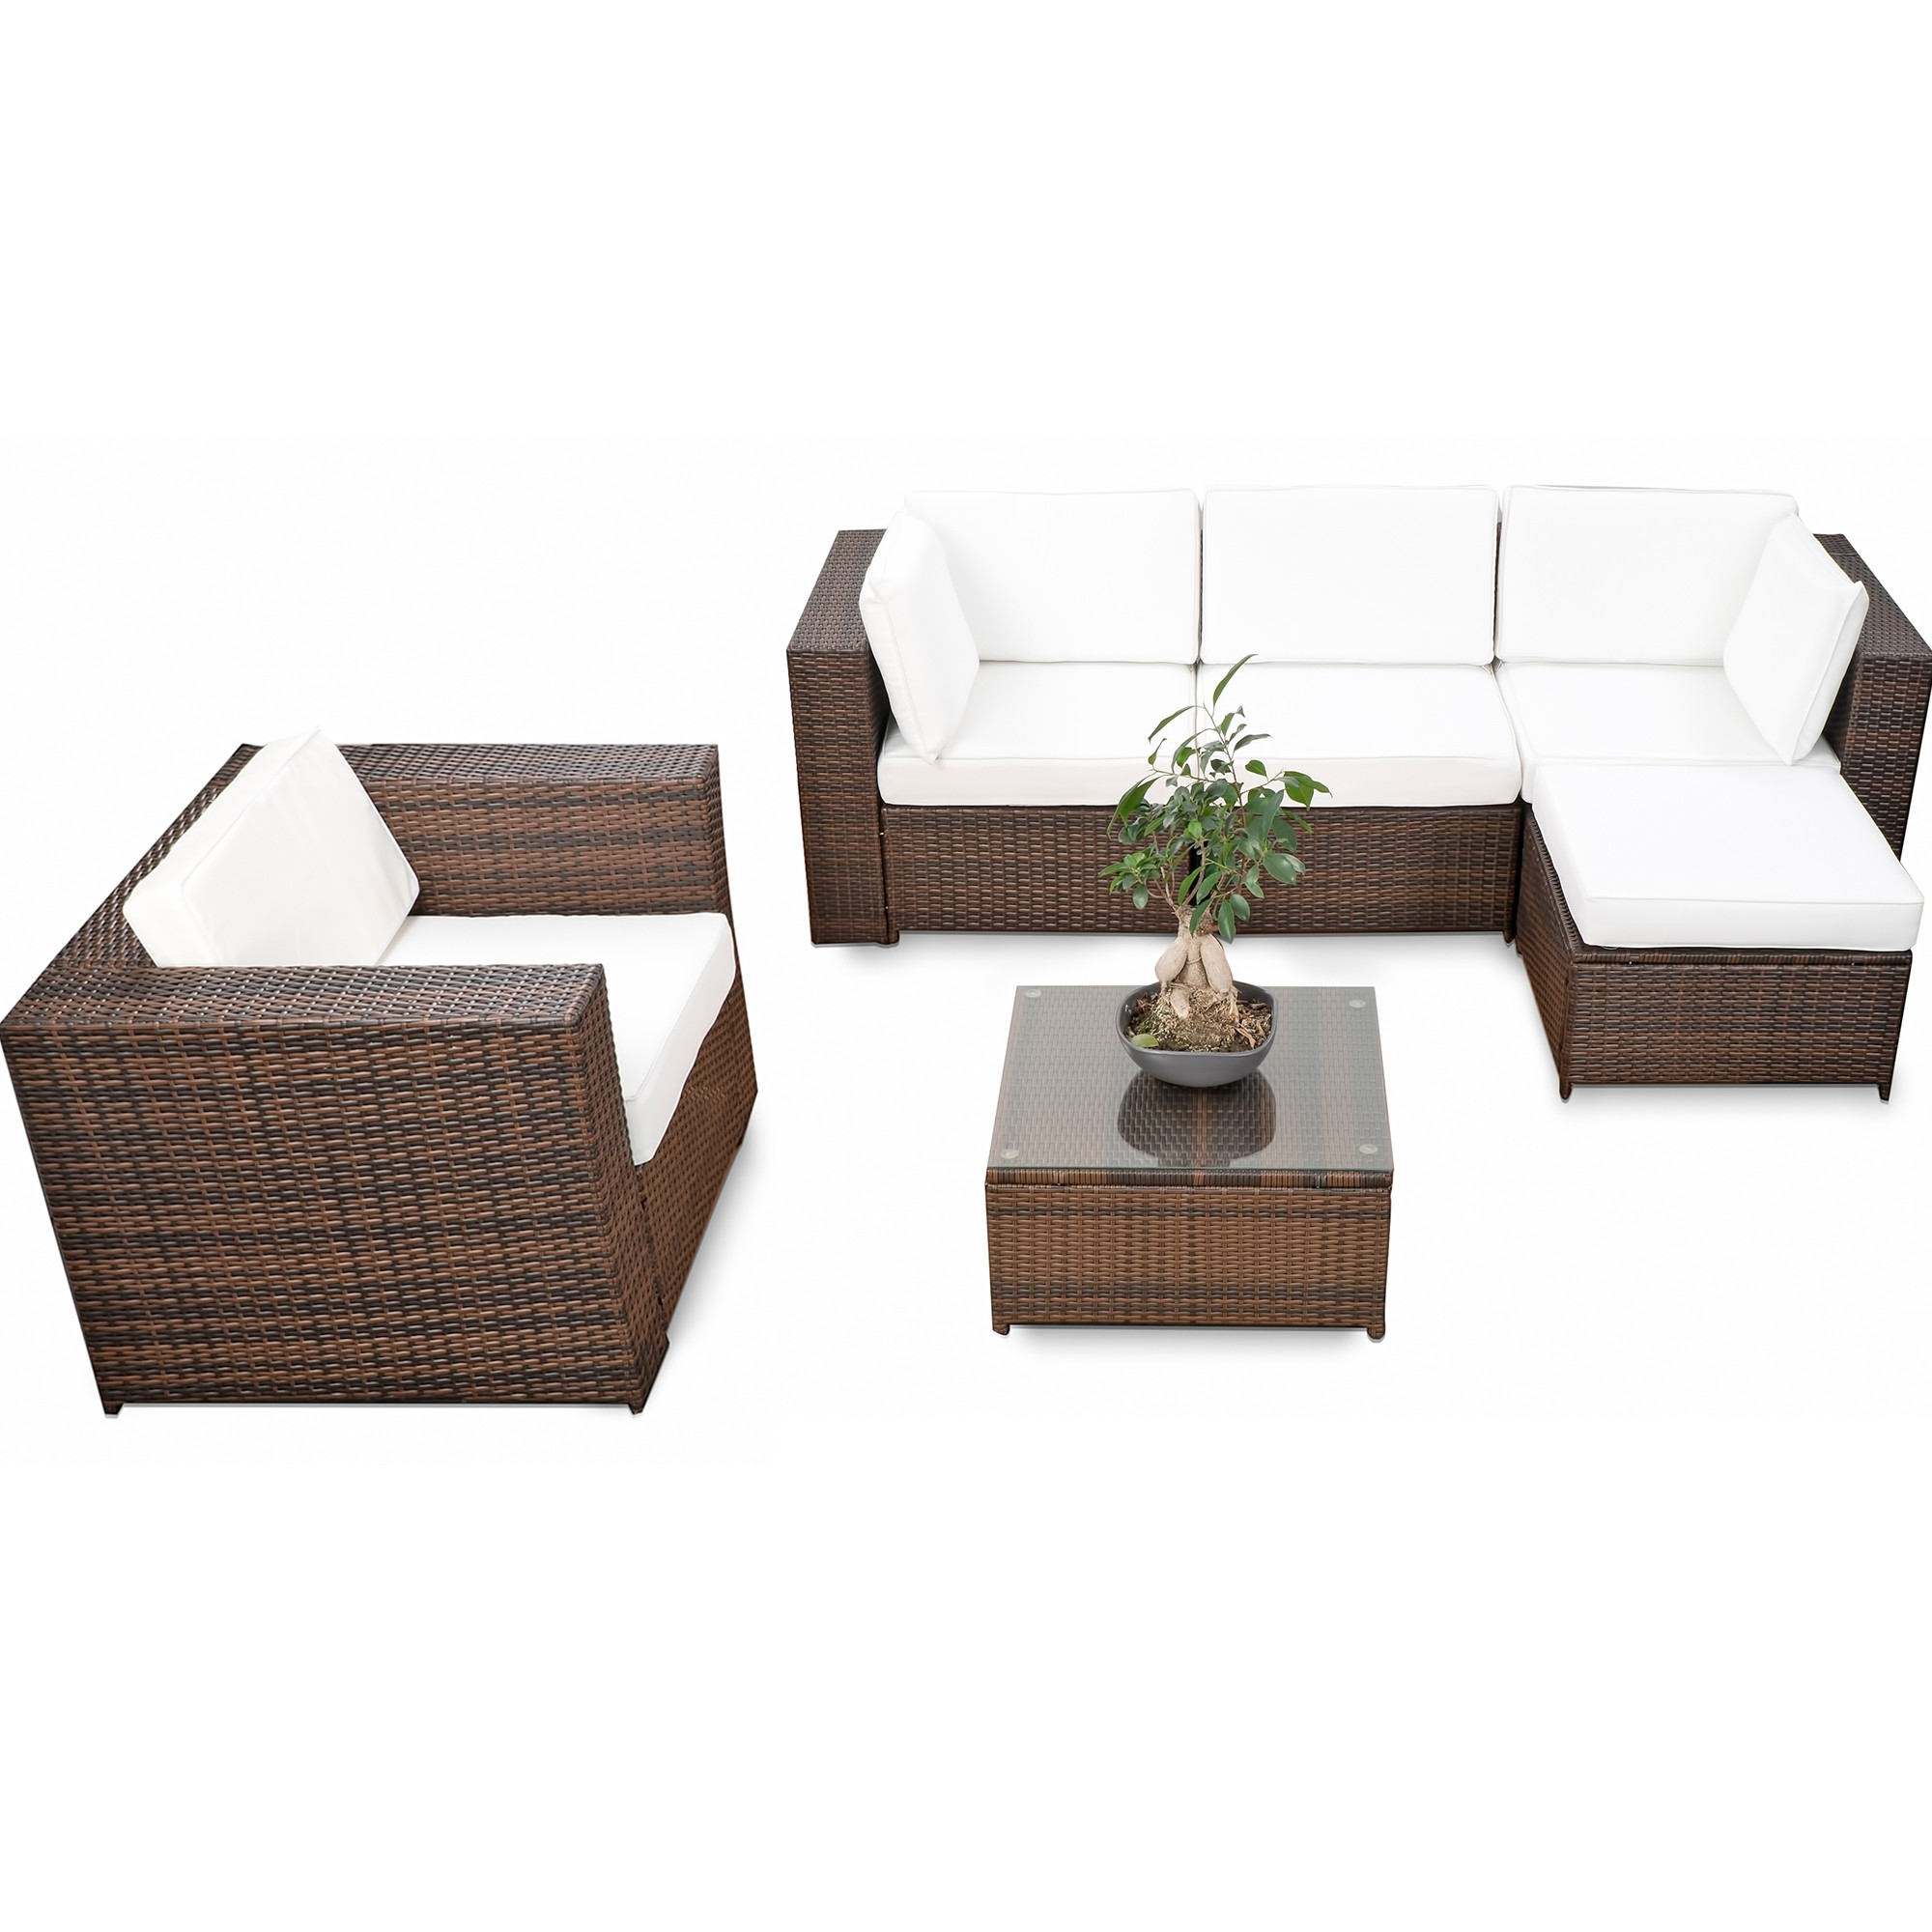 lounge gartenmoebel polyrattan g nstig polyrattan gartenm bel lounge kaufen. Black Bedroom Furniture Sets. Home Design Ideas